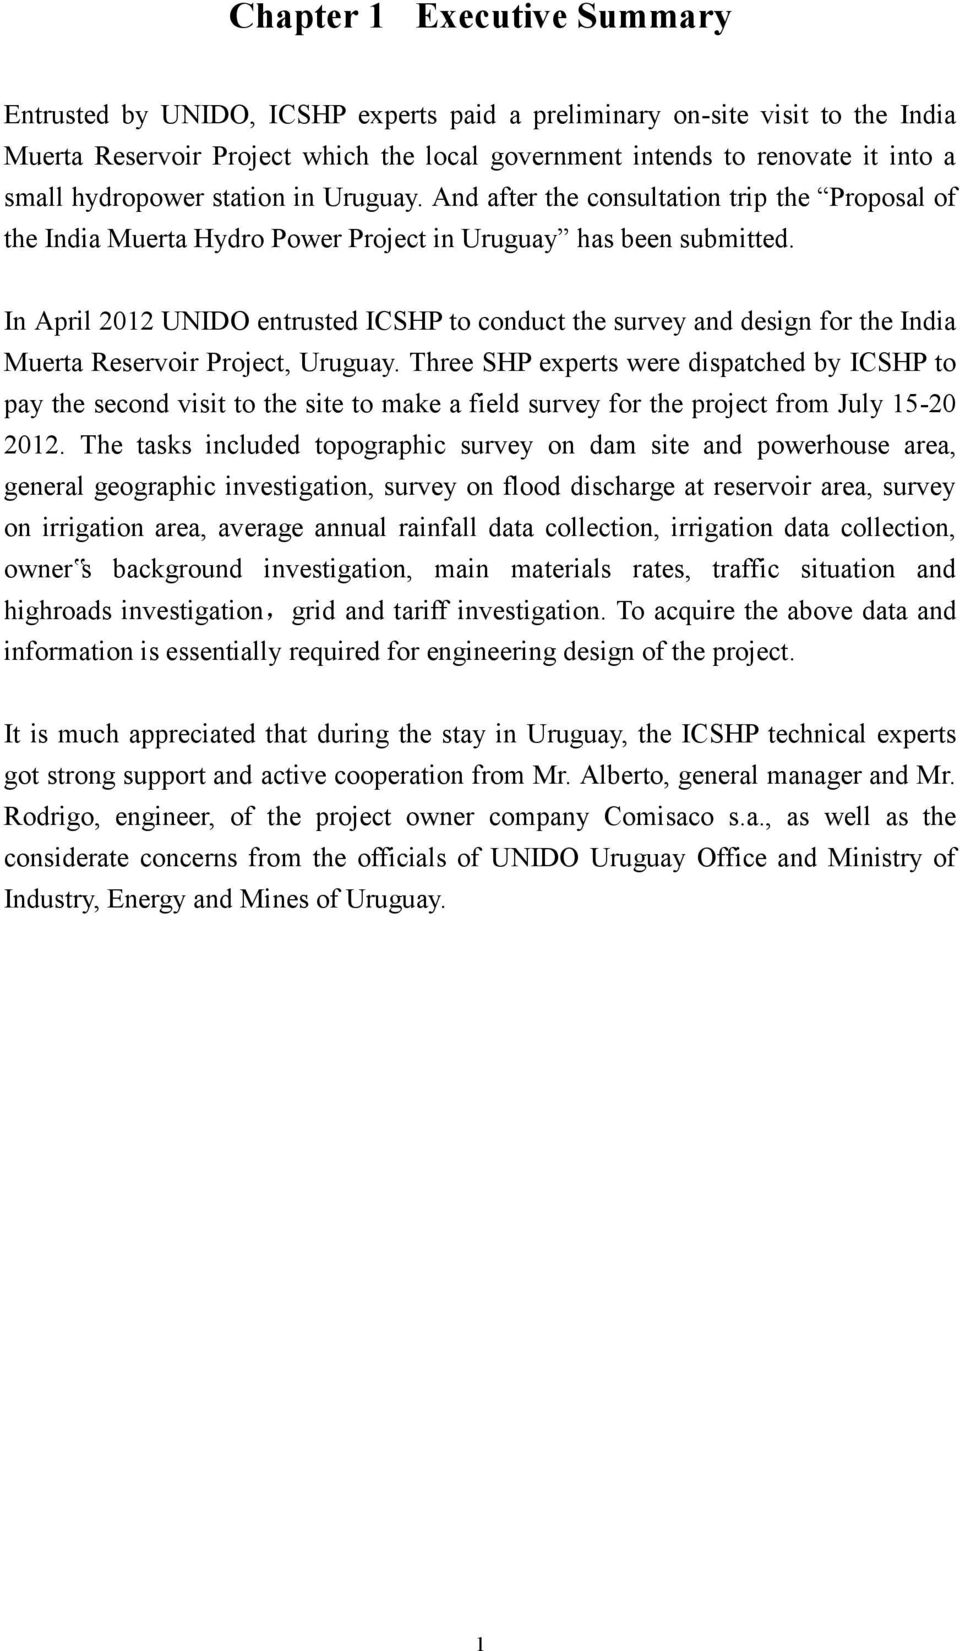 In April 2012 UNIDO entrusted ICSHP to conduct the survey and design for the India Muerta Reservoir Project, Uruguay.